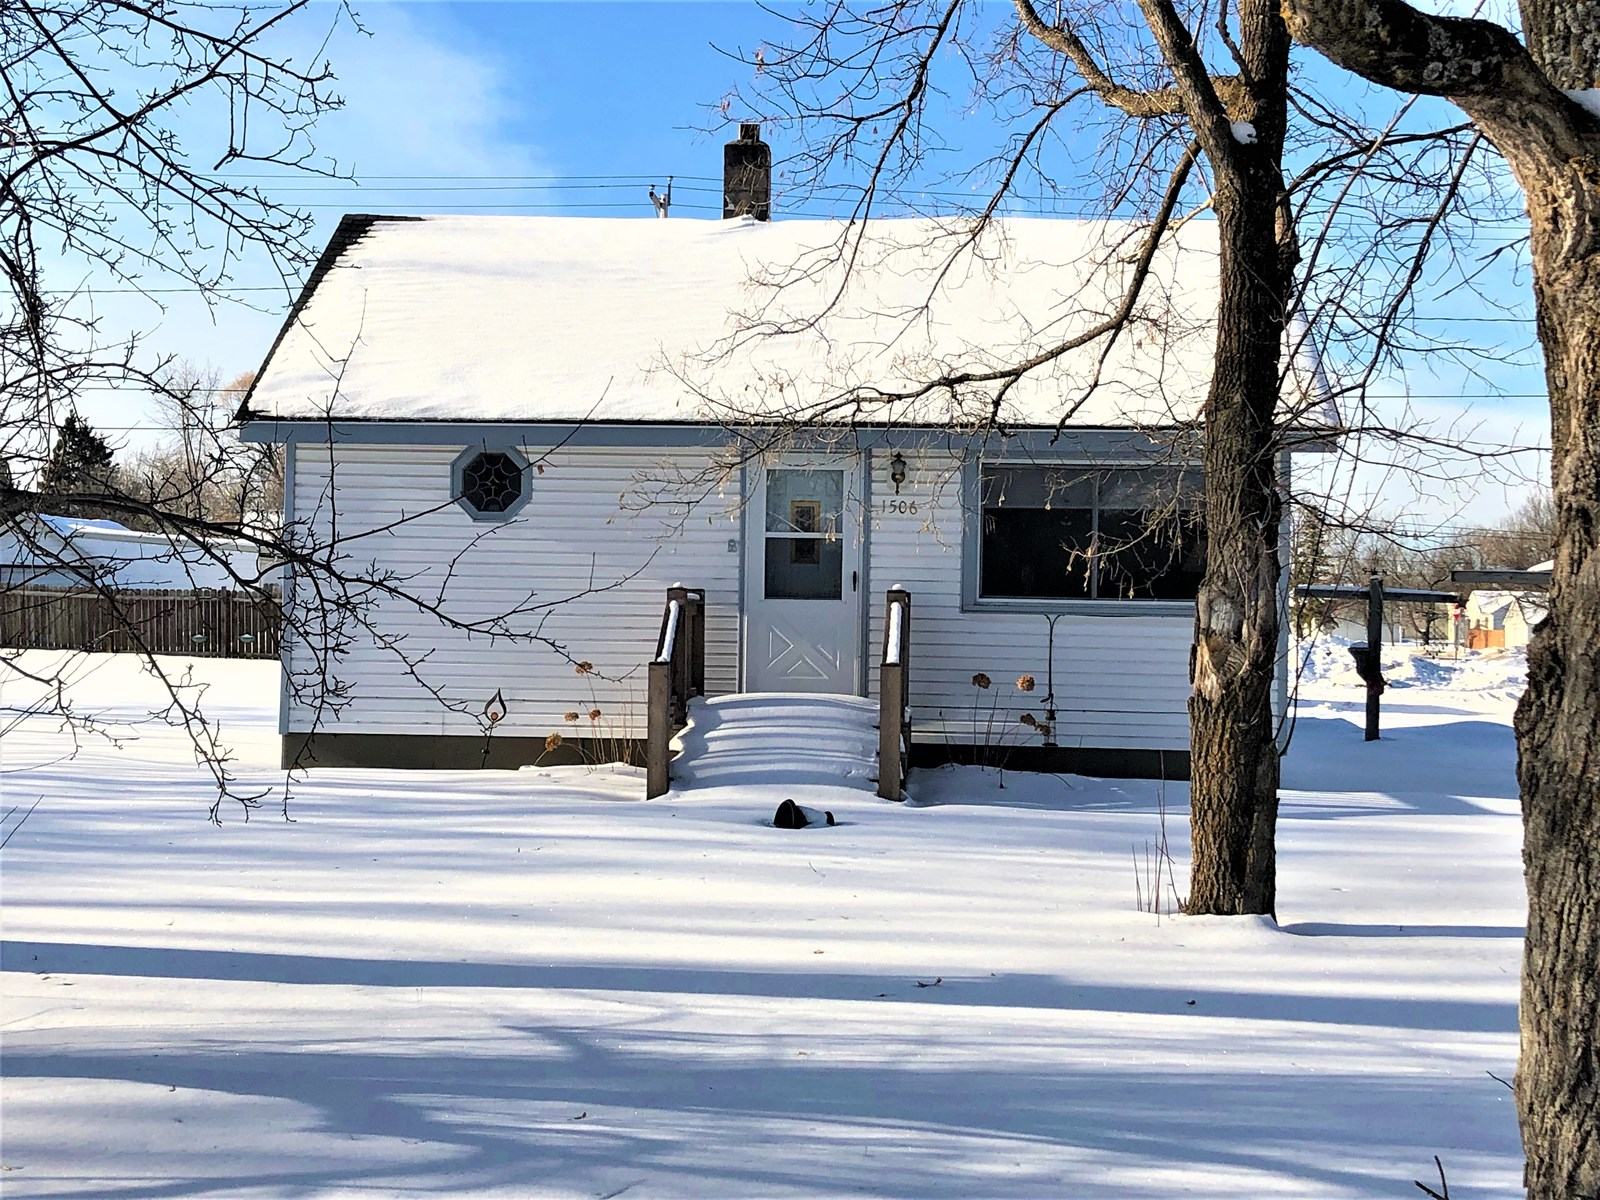 House for sale in International Falls, MN